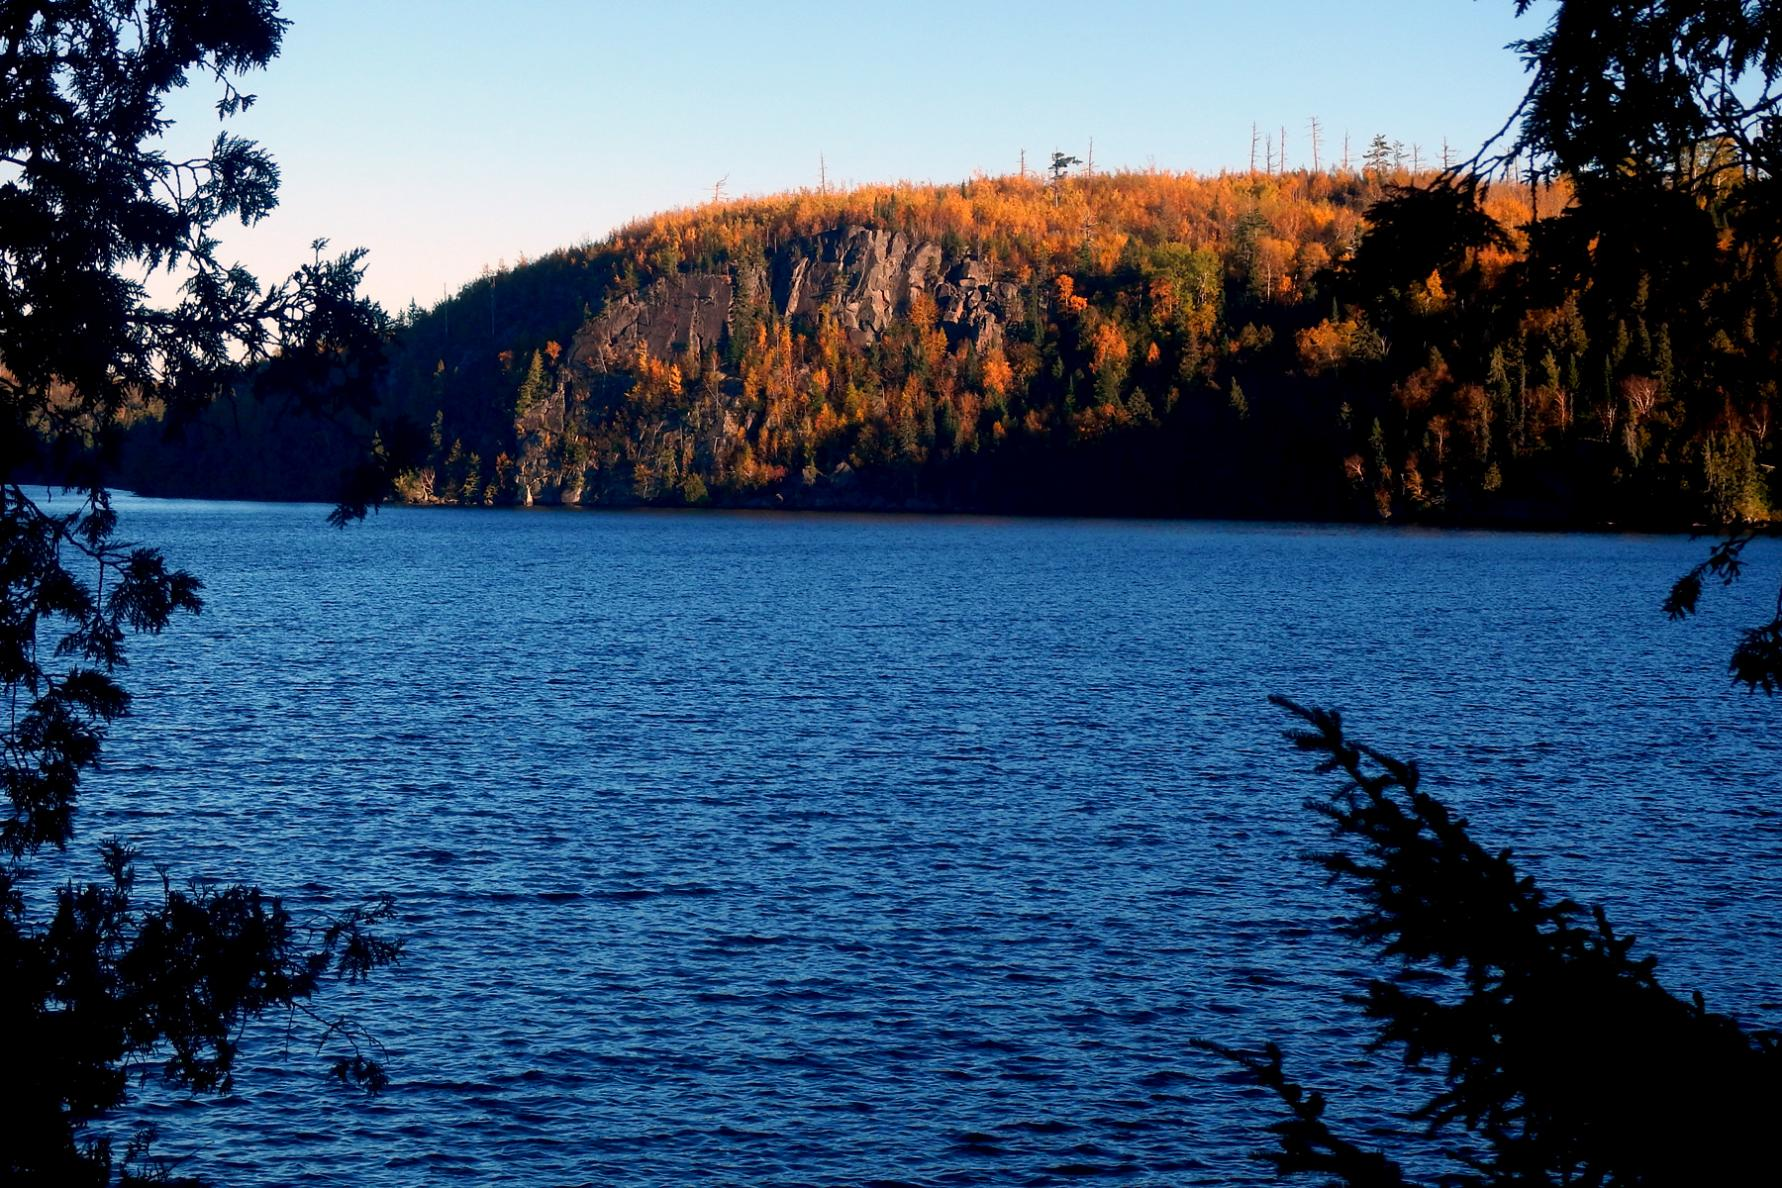 Cliffs on Winchell Lake